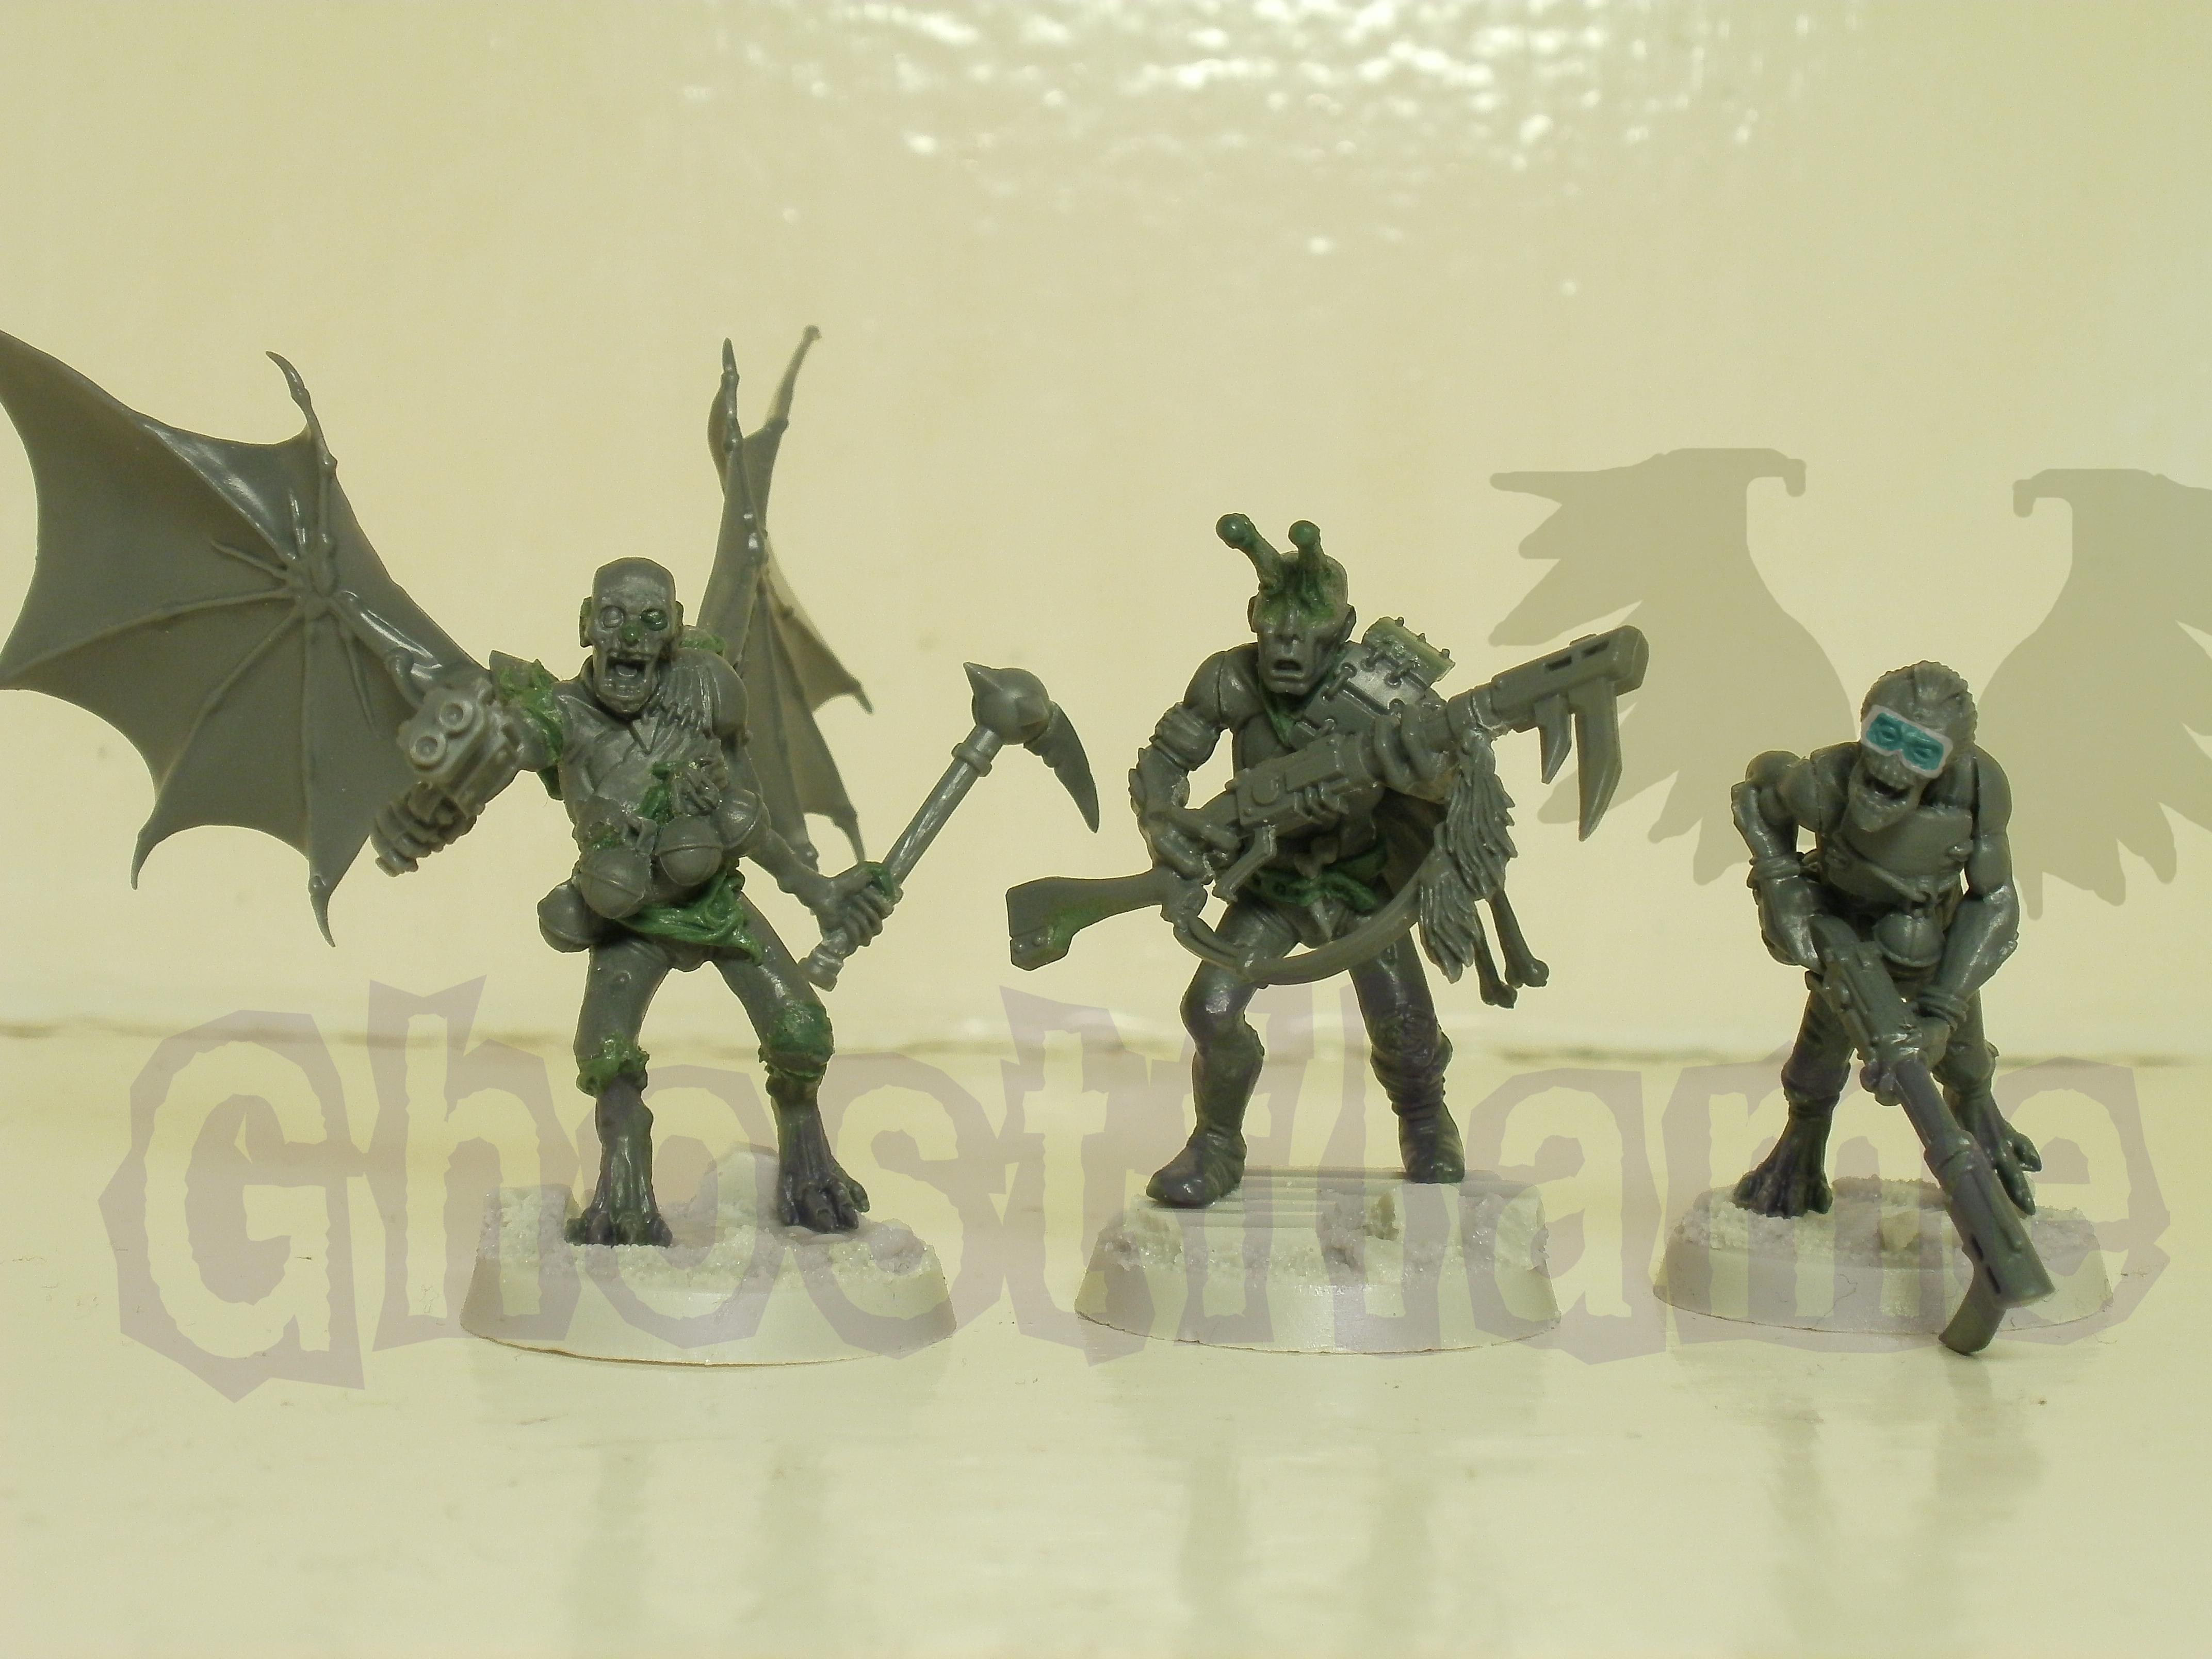 =][=munda, Gang, Ghostflame, I Munda, Inq28mm, Mutant, Necromunda, Scavvie, Scavvies, Scavvy, Work In Progress